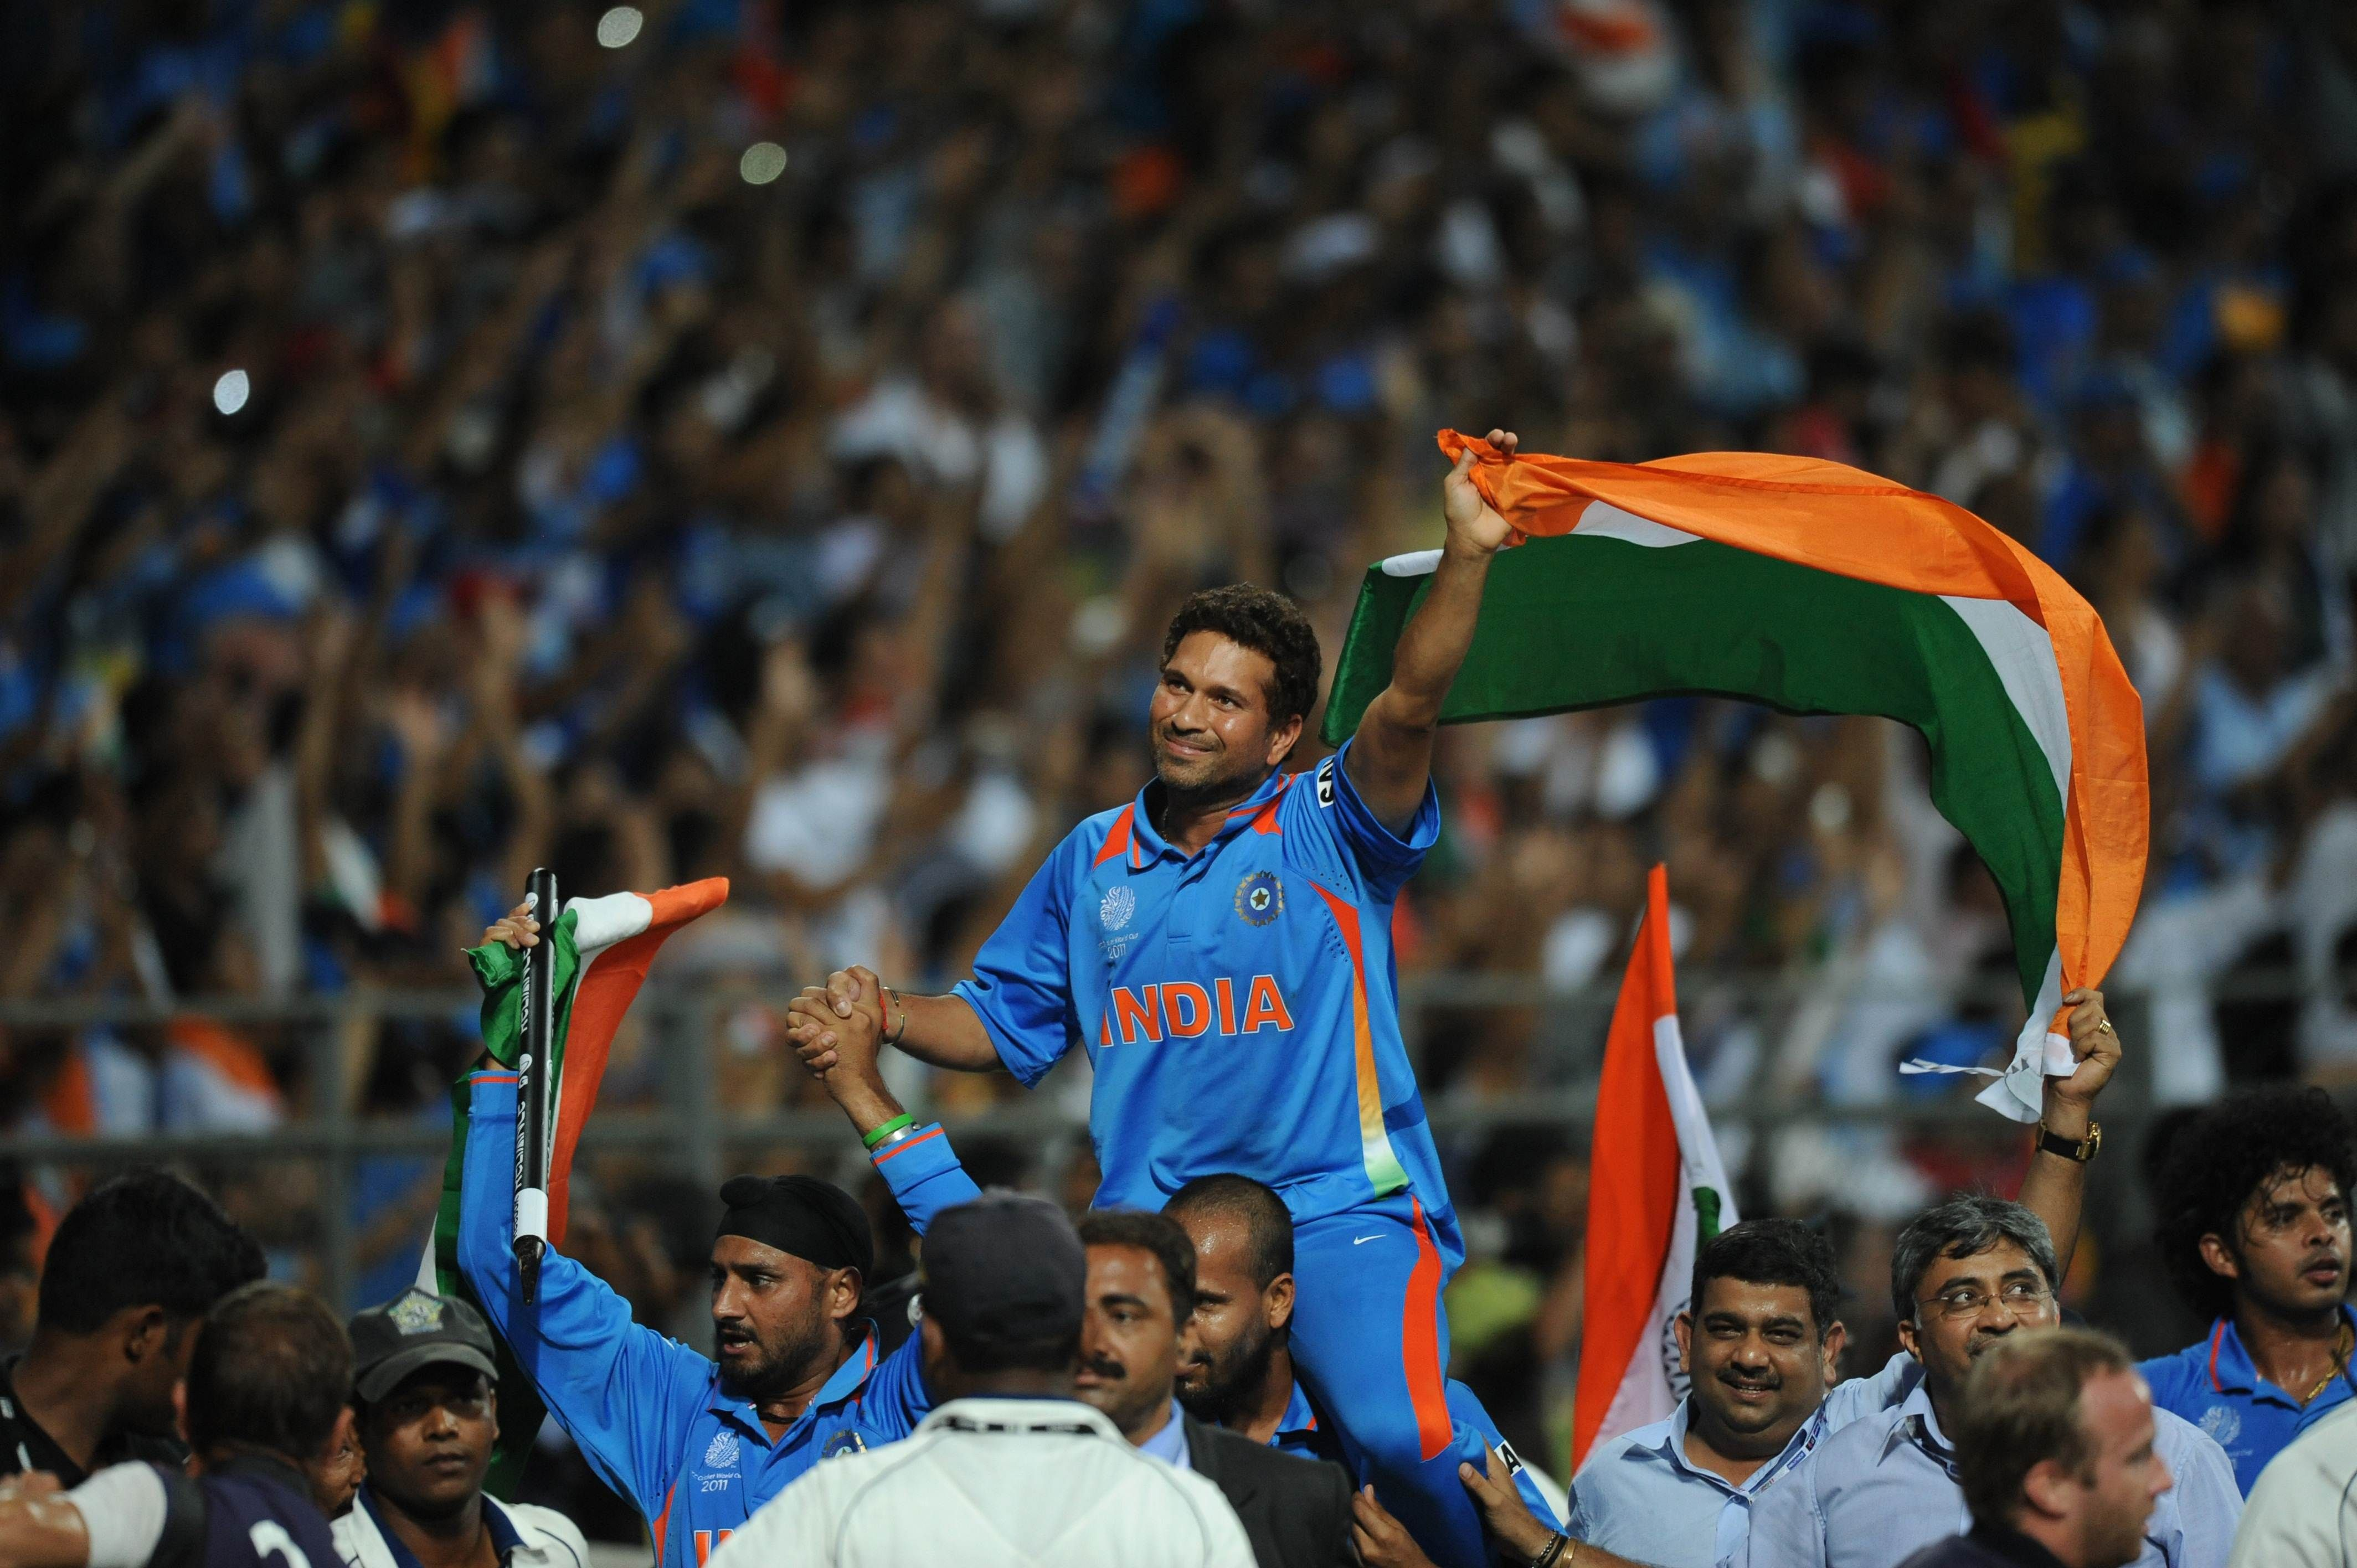 Sachin...India wins Cricket World Cup 2011 (With images